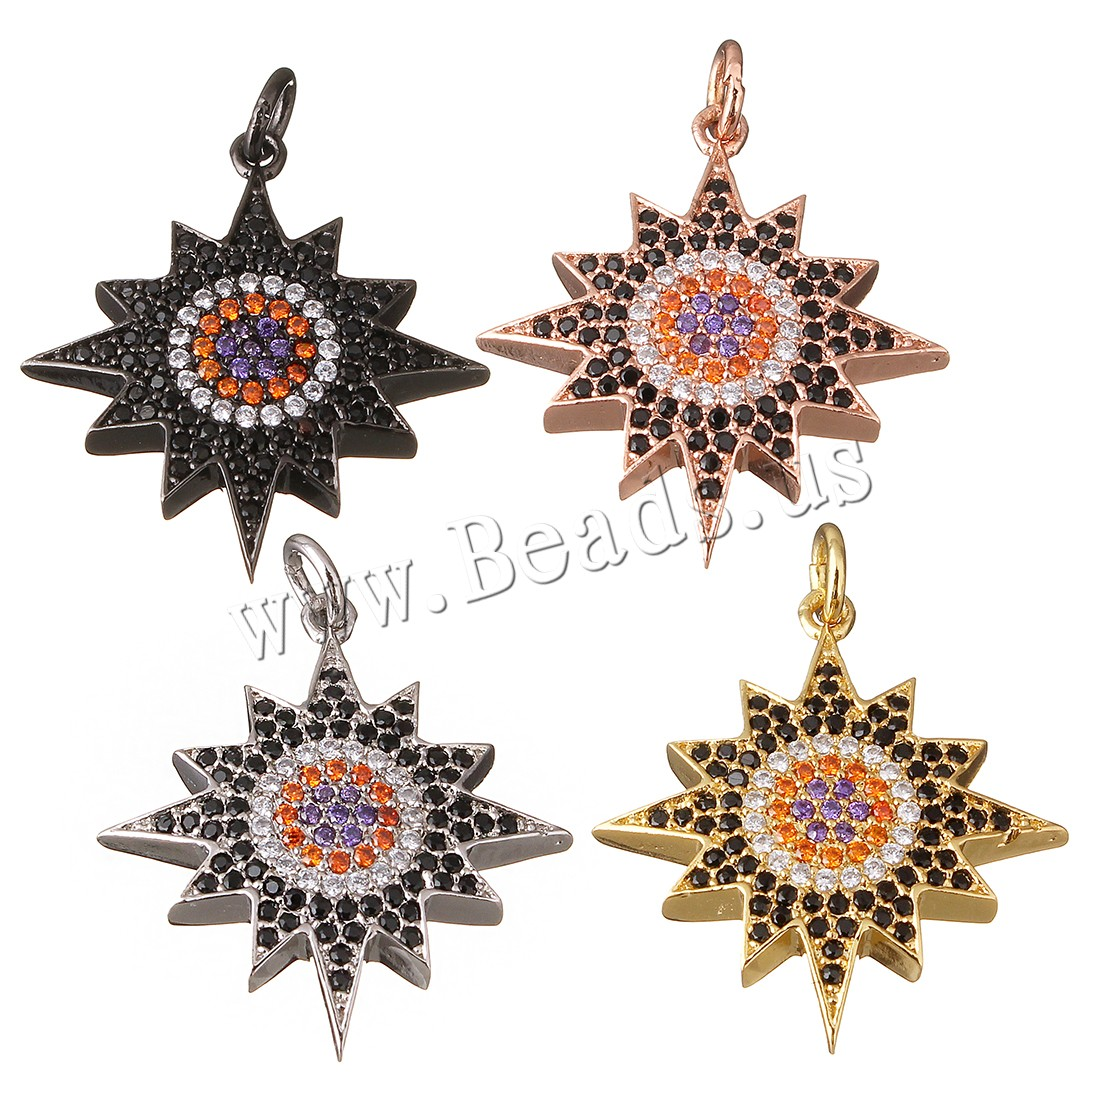 Buy Cubic Zirconia Micro Pave Brass Pendant Flower plated micro pave cubic zirconia colors choice 22x24x4mm Hole:Approx 3mm 1 Sold Lot